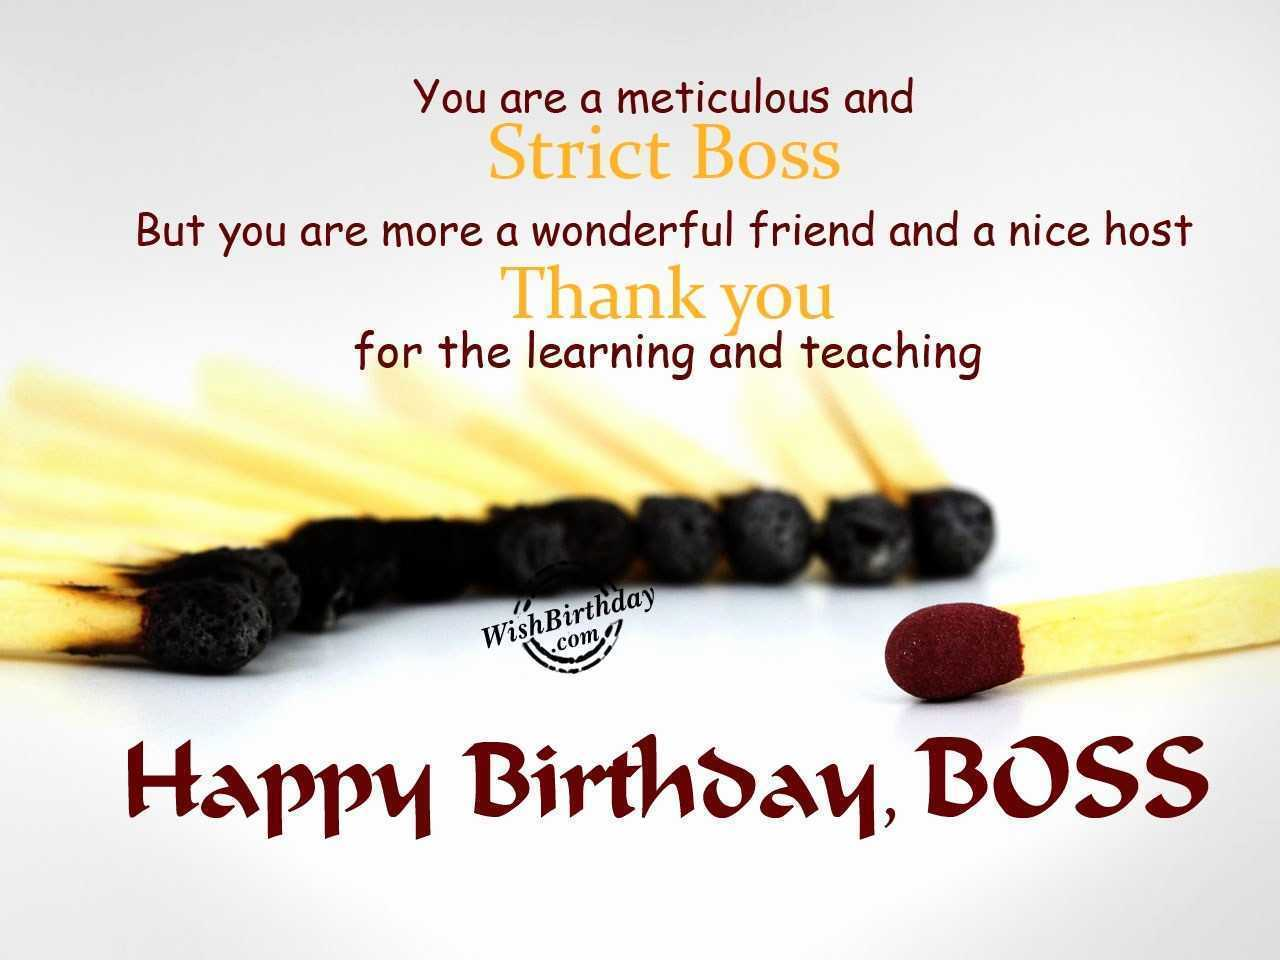 birthday message for a boss and friend ; birthday-wishes-boss-fresh-birthday-wishes-for-boss-page-4-of-birthday-wishes-boss